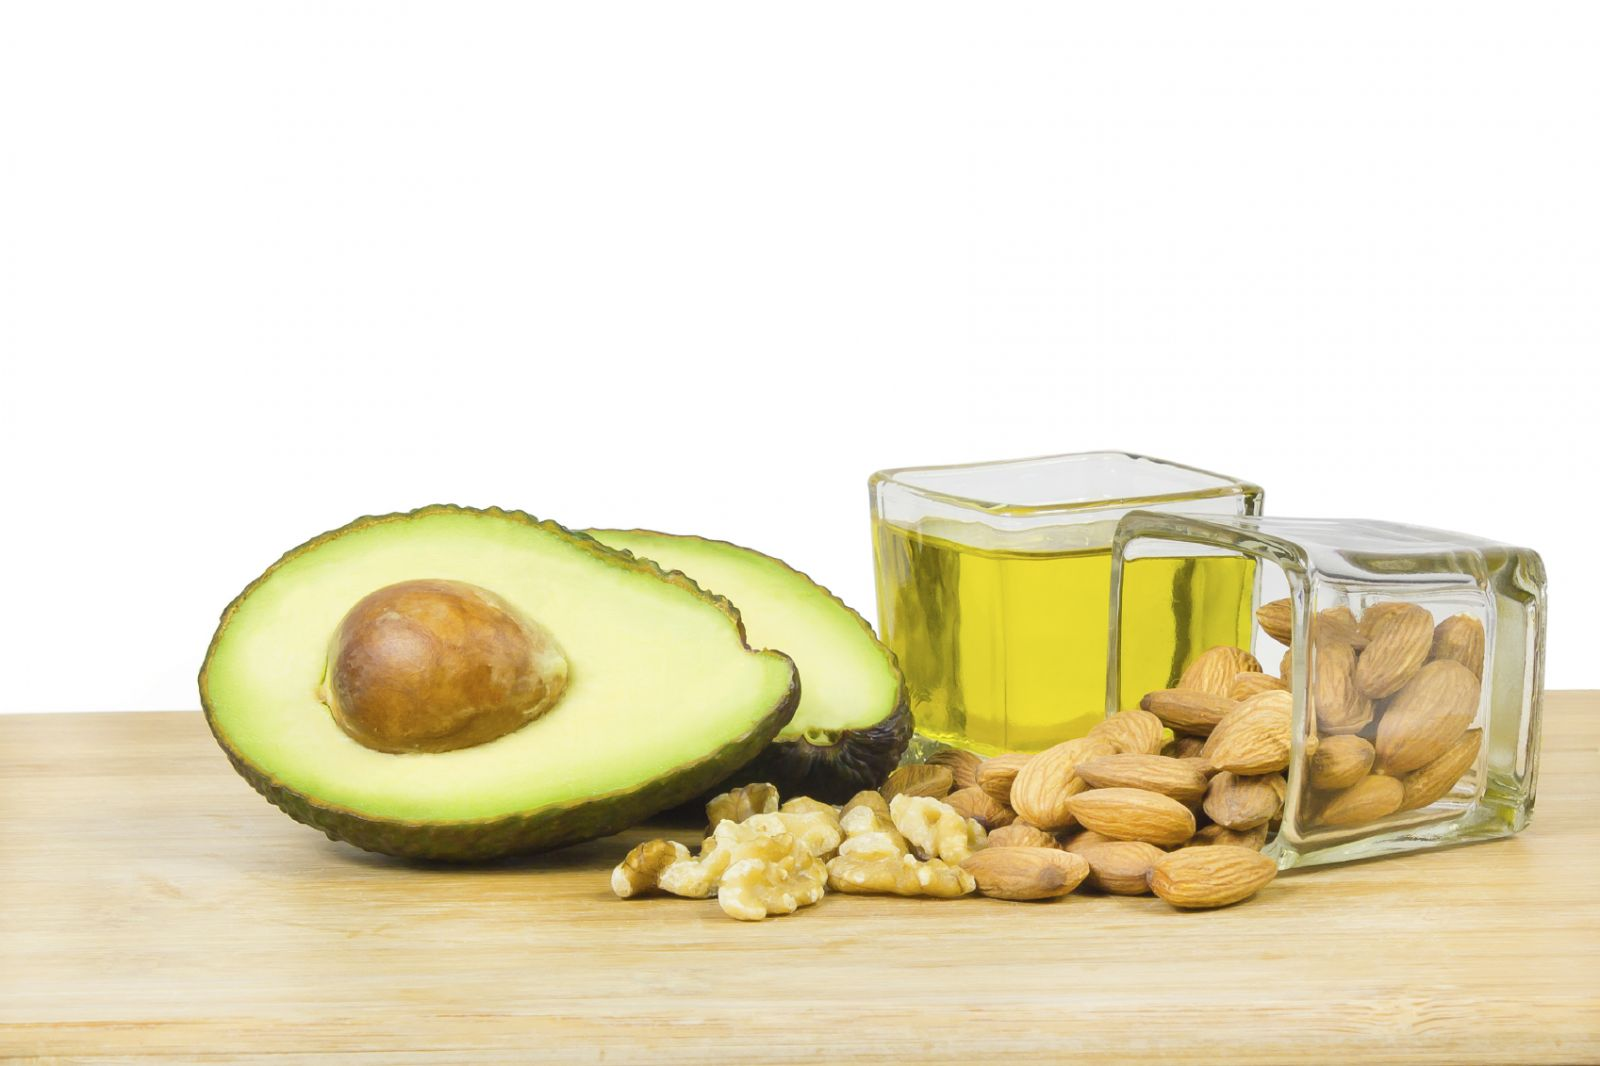 Mediterranean-style: the healthy fats and healthy carbs diet